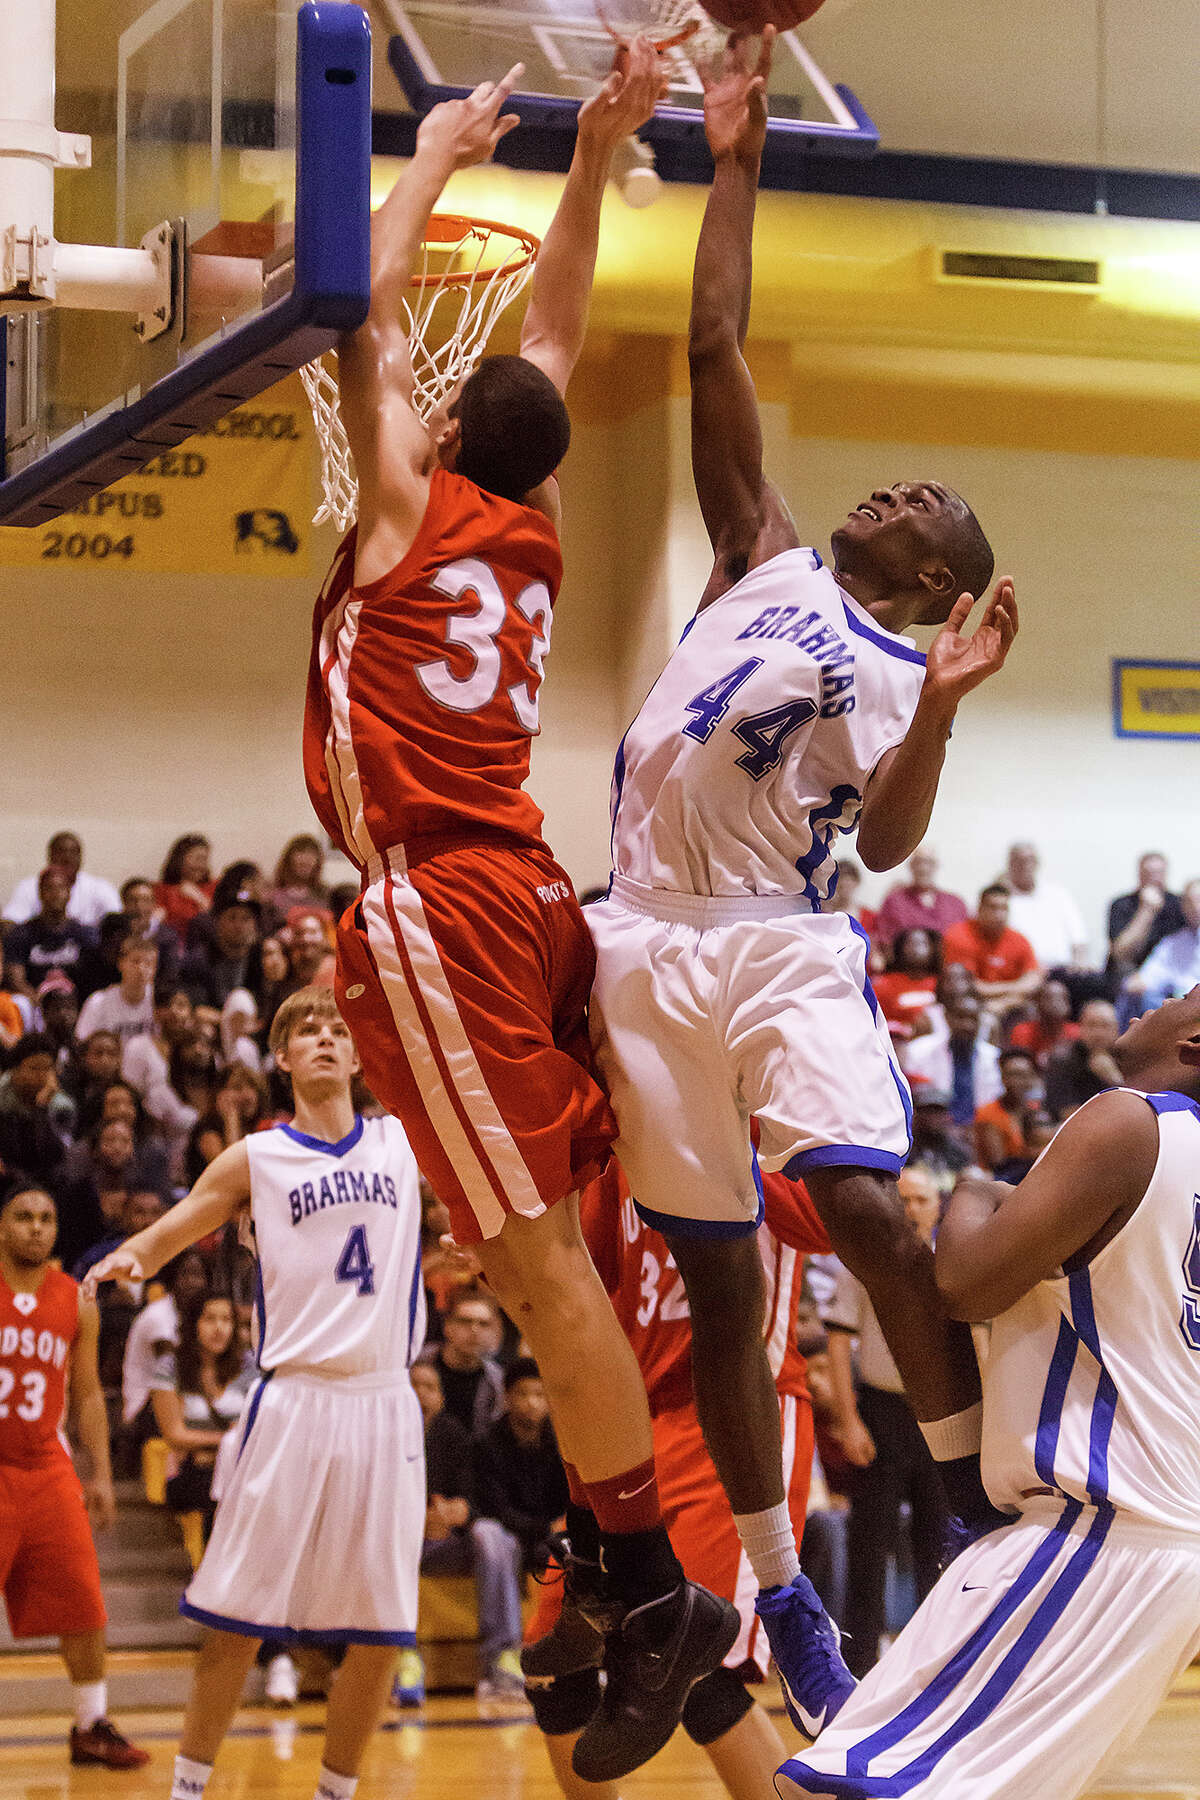 MacArthur's Marco McKee (right) blocks a shot by Judson's David Wacker during the second half of their Class 5A bidistrict game at Clemens High School on Monday, Feb. 18, 2013. Judson won the game 49-45.